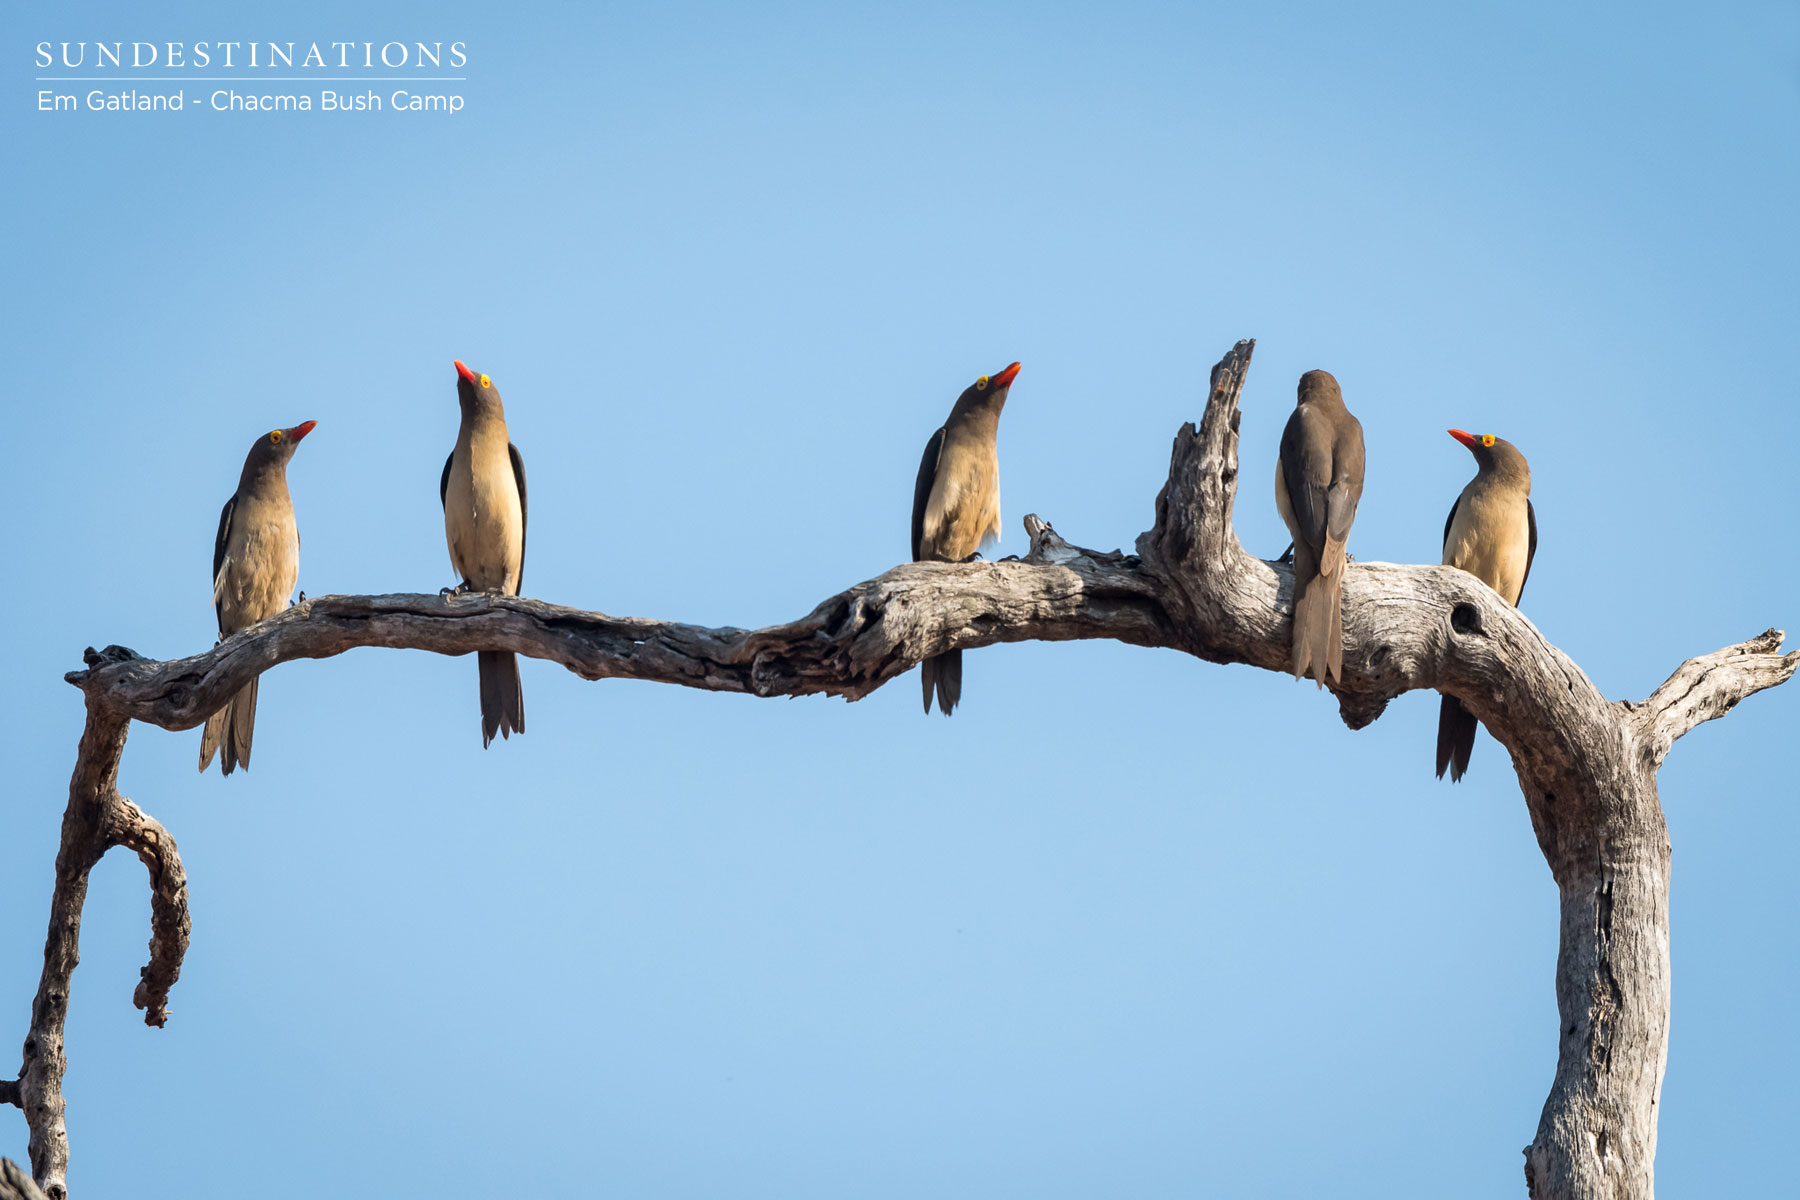 Oxpeckers at Chacma